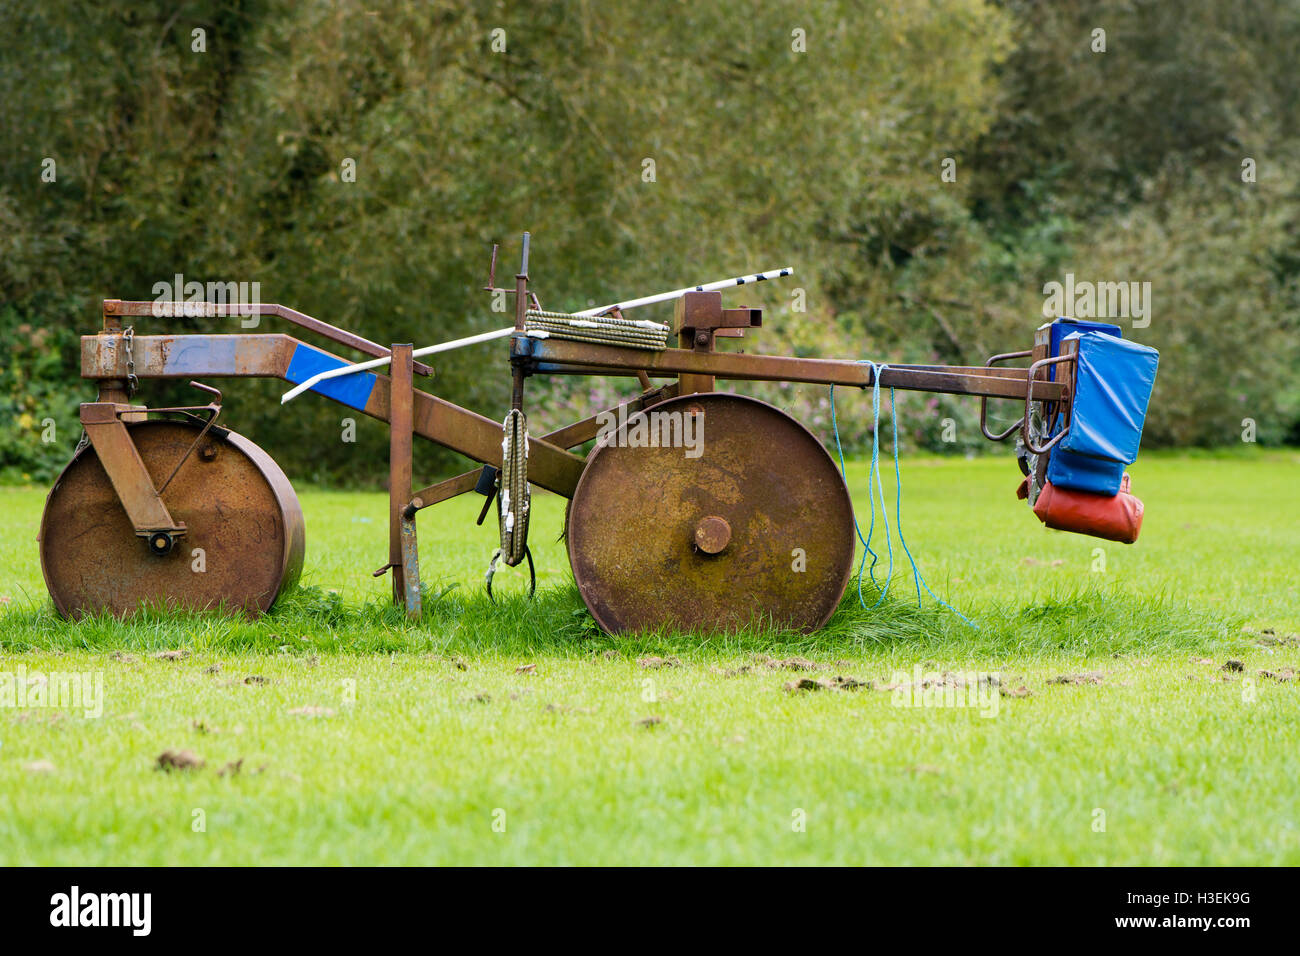 Rugby scrum machine in profile. Old and rusty Rugby scrummage training device on pitch near Bath, in Somerset, UK - Stock Image